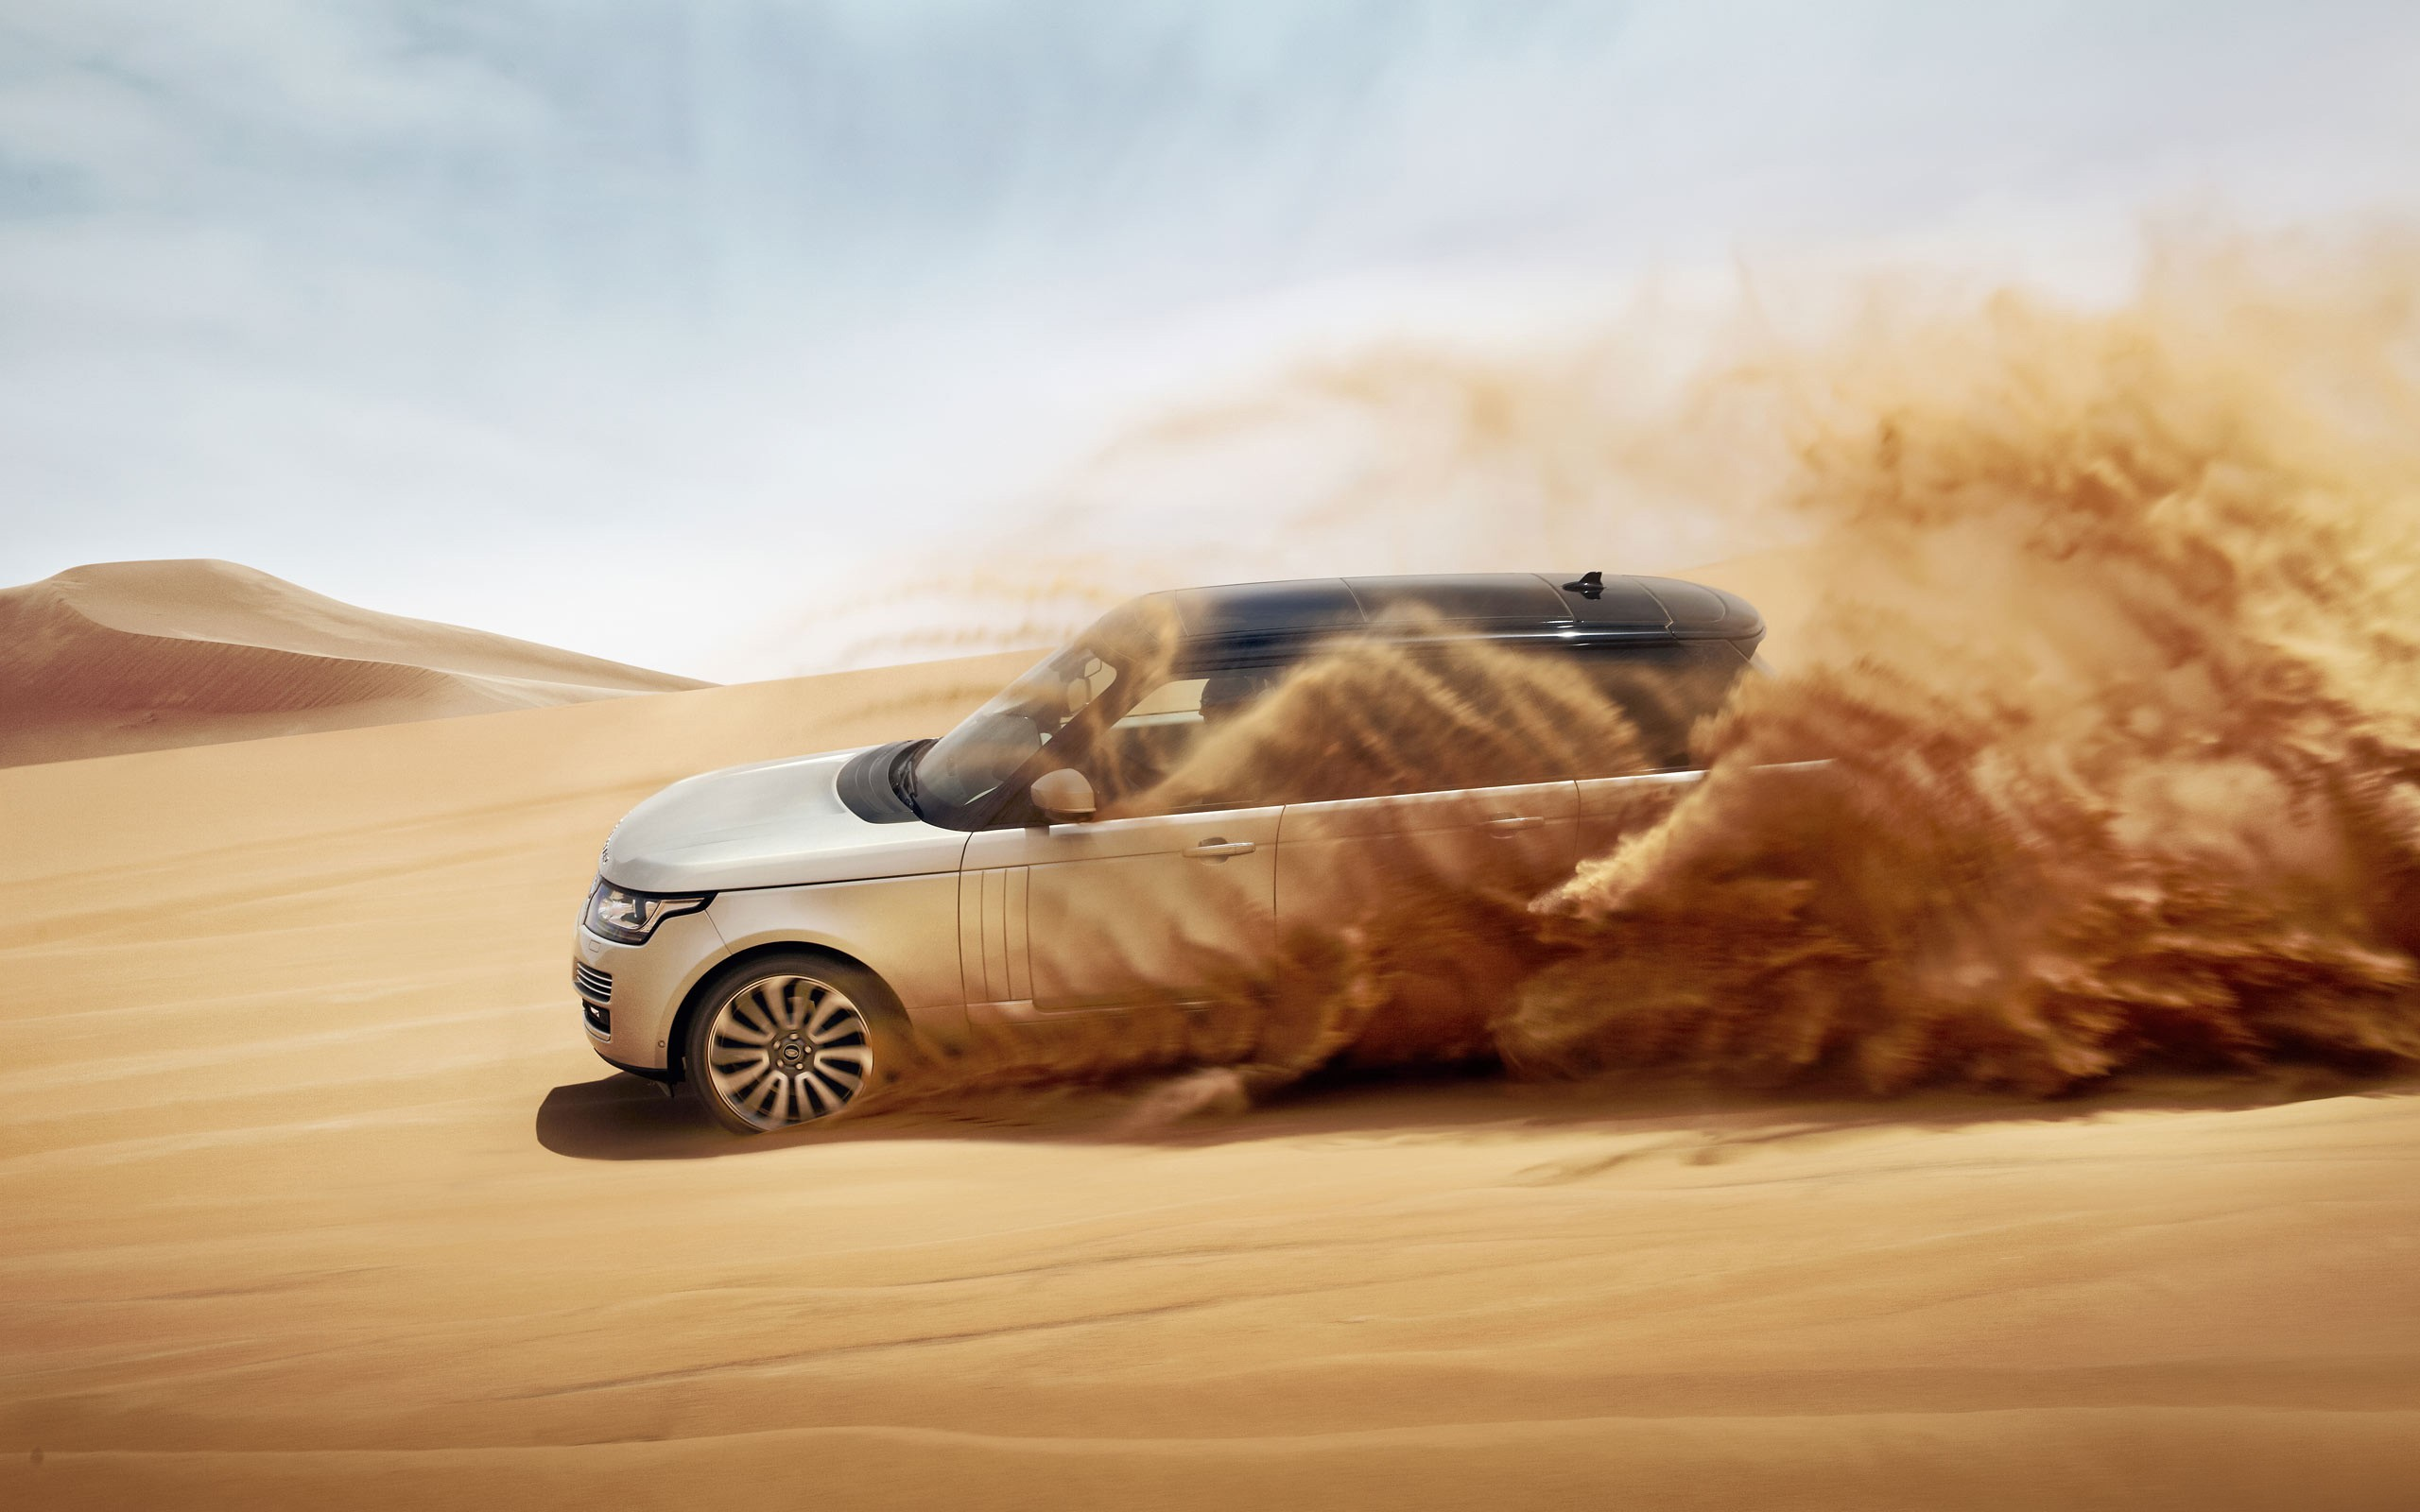 2013 Land Rover Range Rover 4 Wallpaper Hd Car Wallpapers